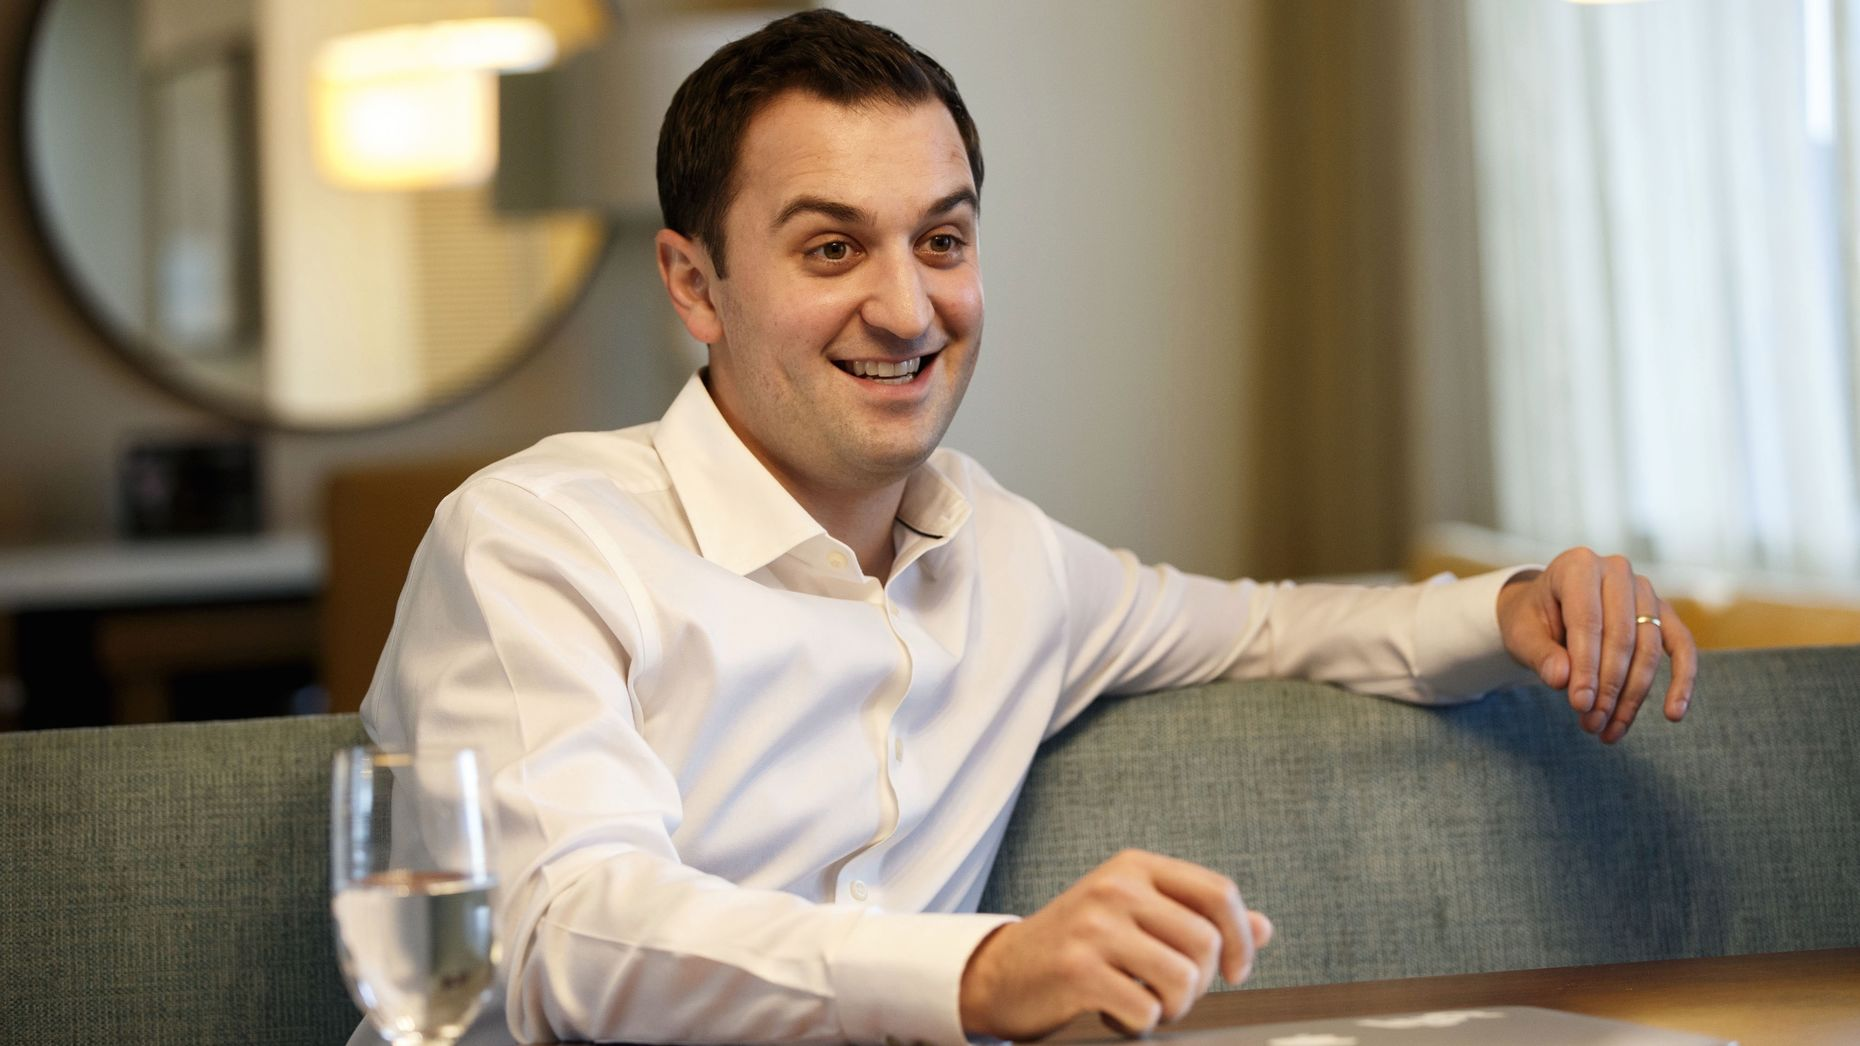 Blue apron financials - Lyft Co Founder And President John Zimmer Photo By Bloomberg